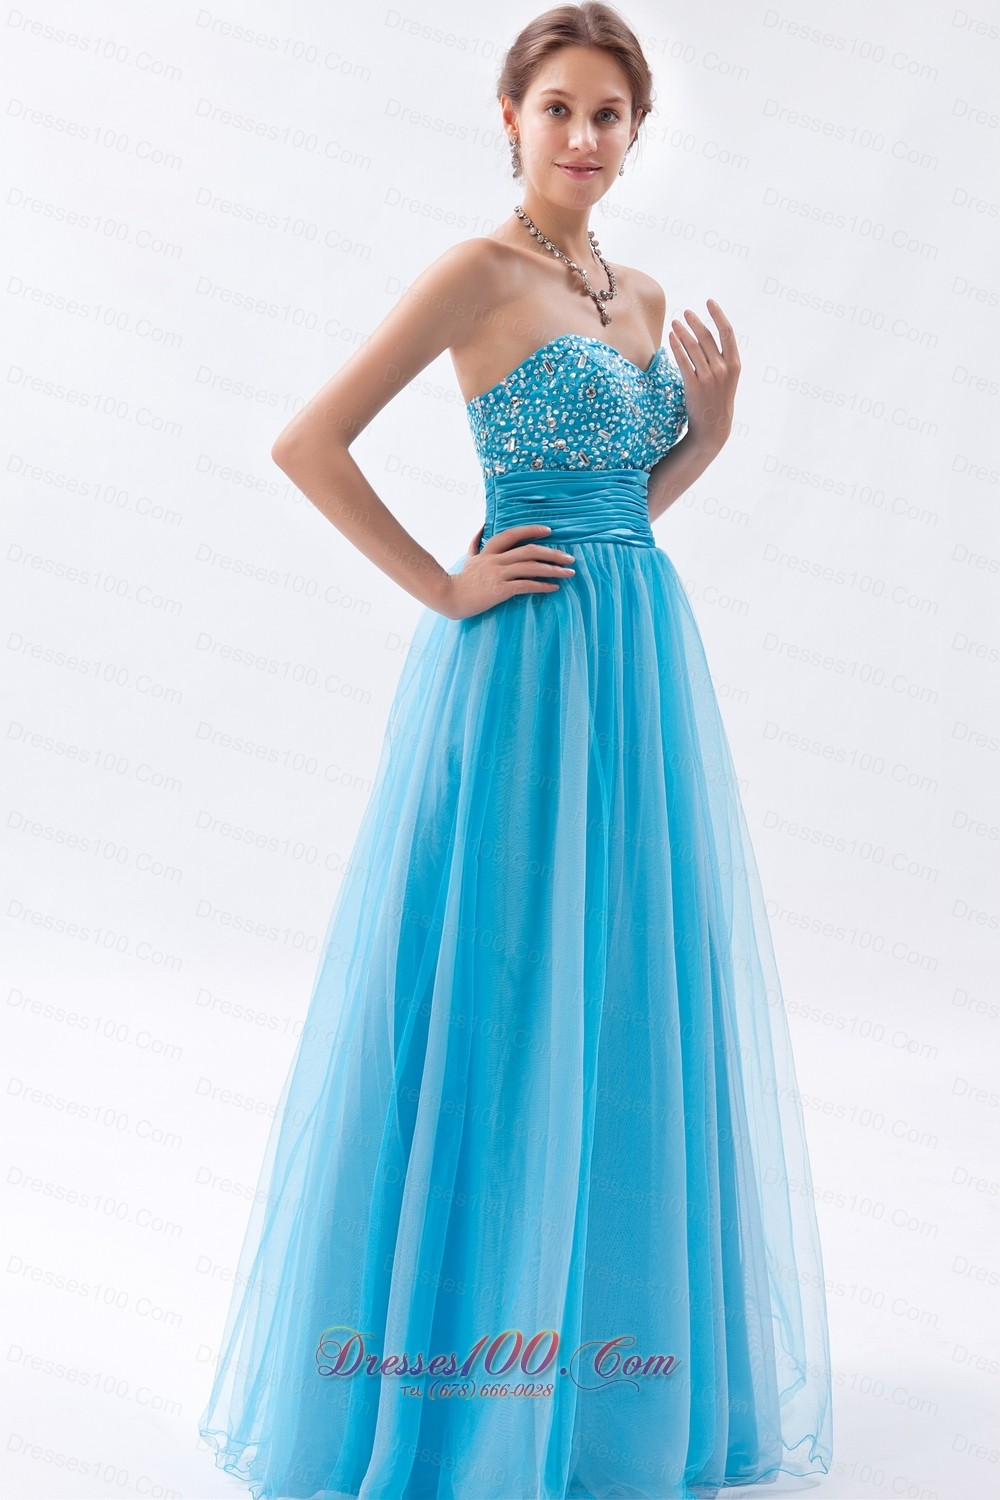 Baby Blue Tulle Princess Prom Dress Beadings Ruched